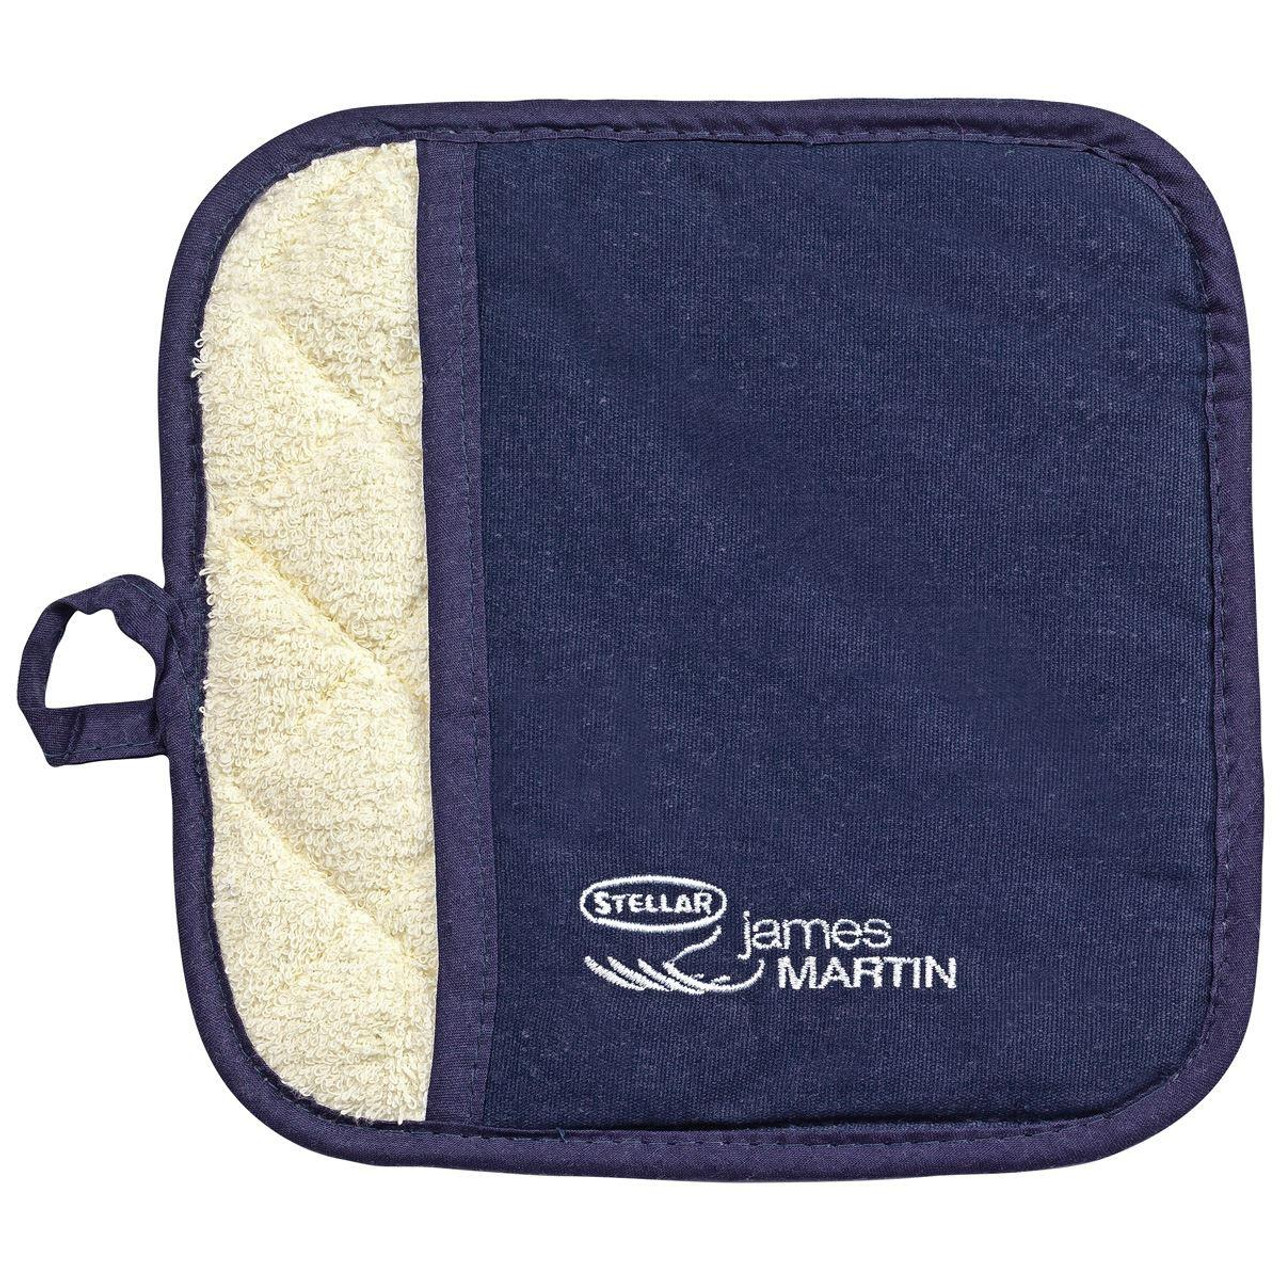 Stellar James Martin Textile Pot Holder